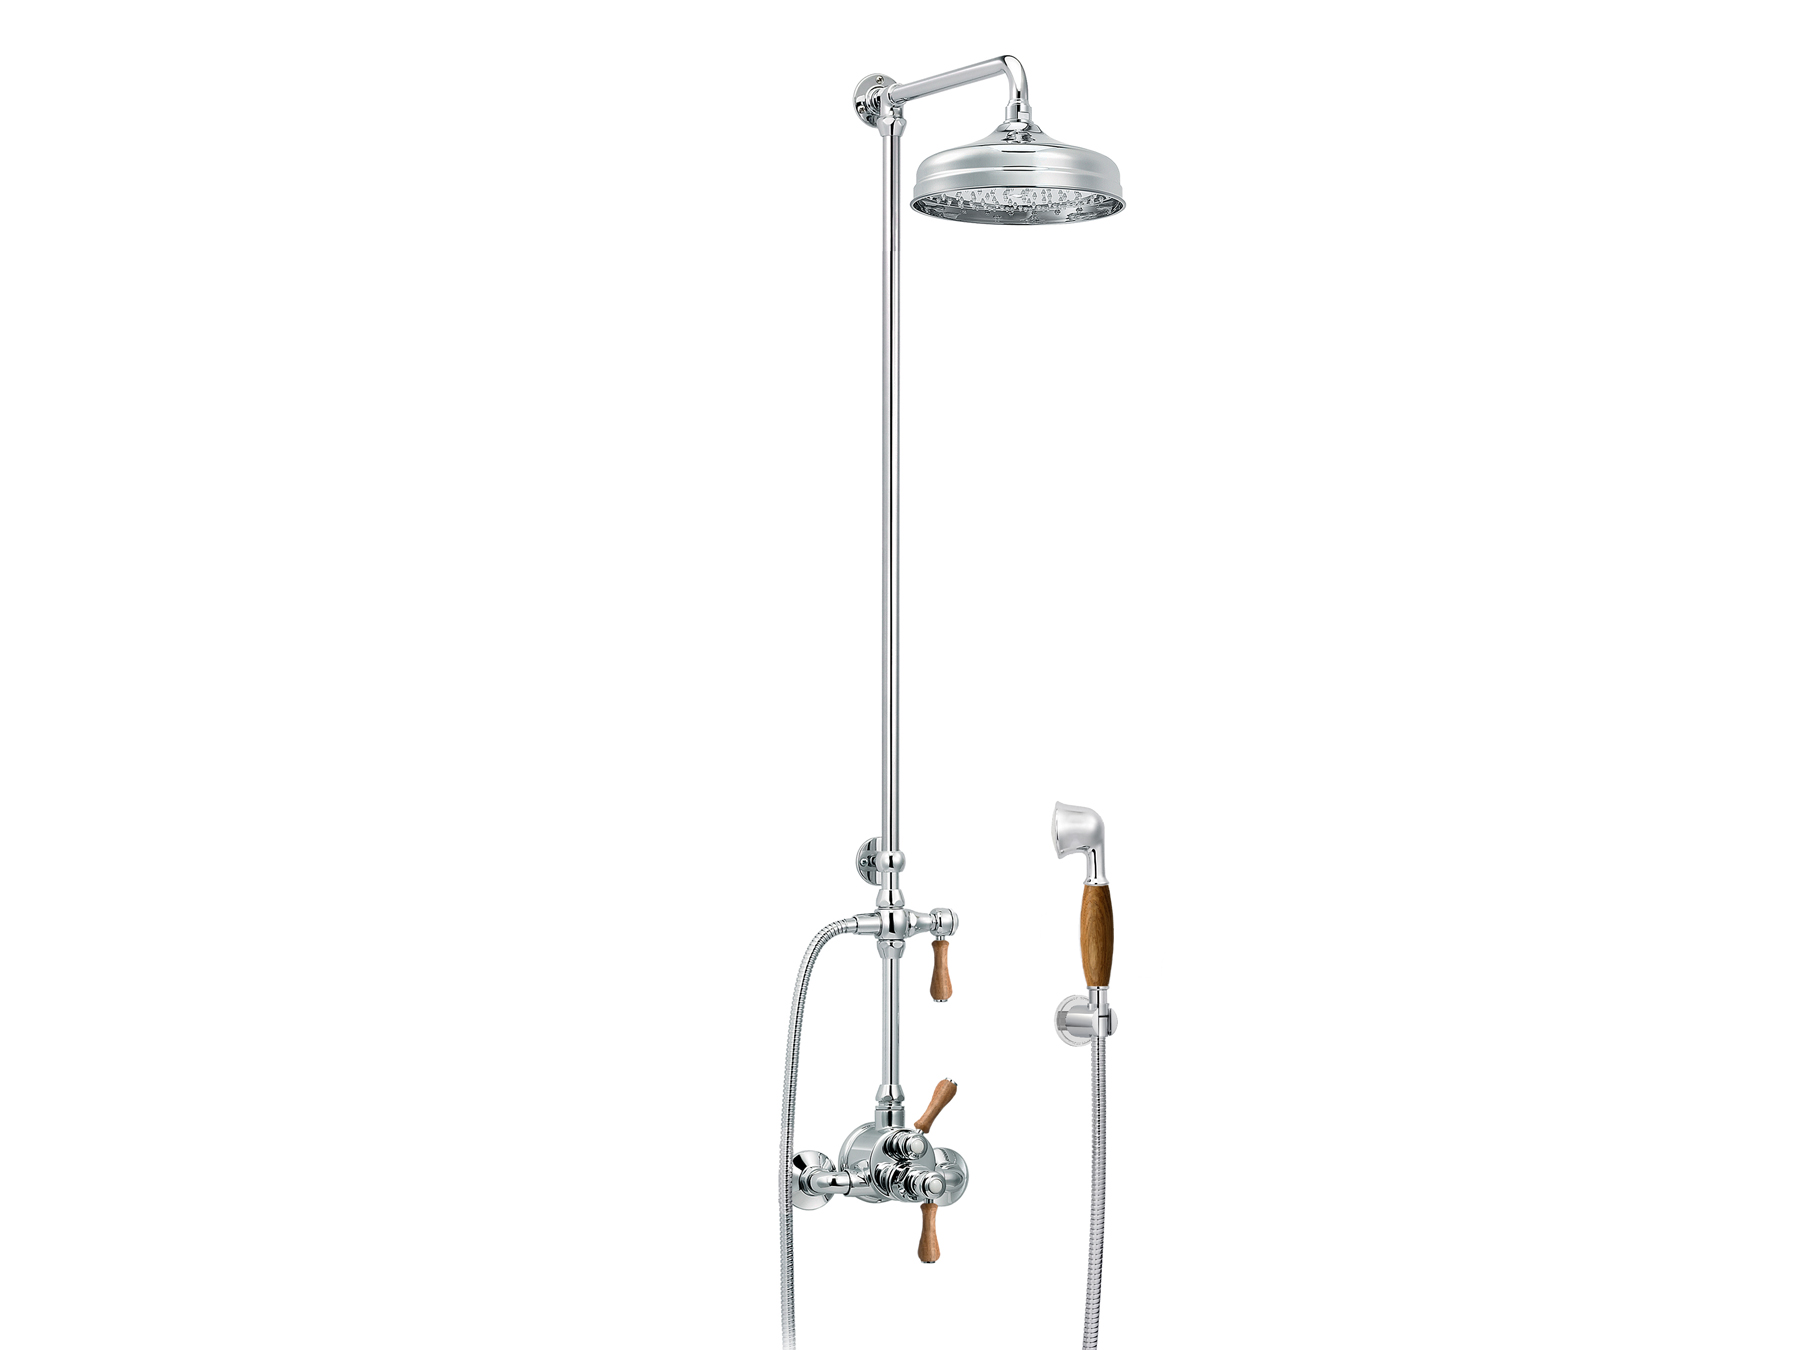 Set de douche thermostatique 1935.--.77-xx